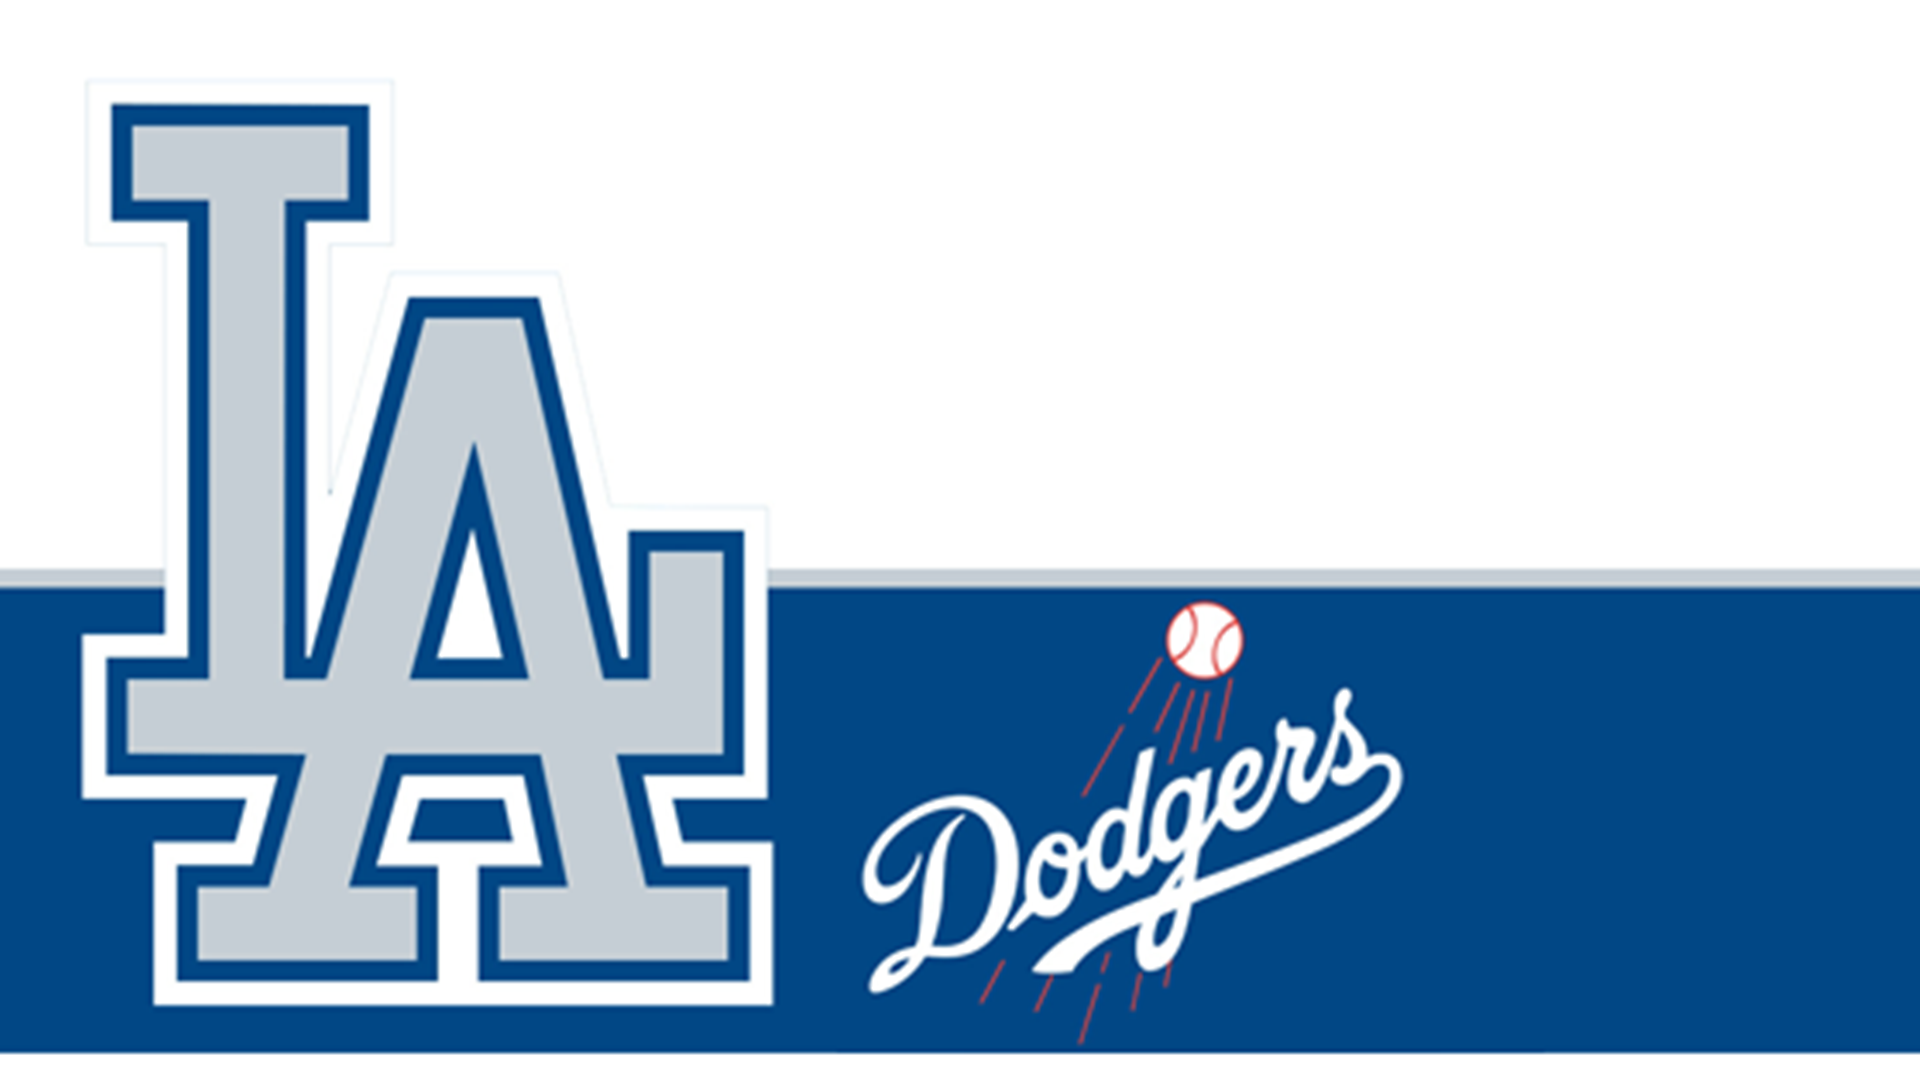 Dodgers Wallpaper - Los Angeles Dodgers Hd , HD Wallpaper & Backgrounds